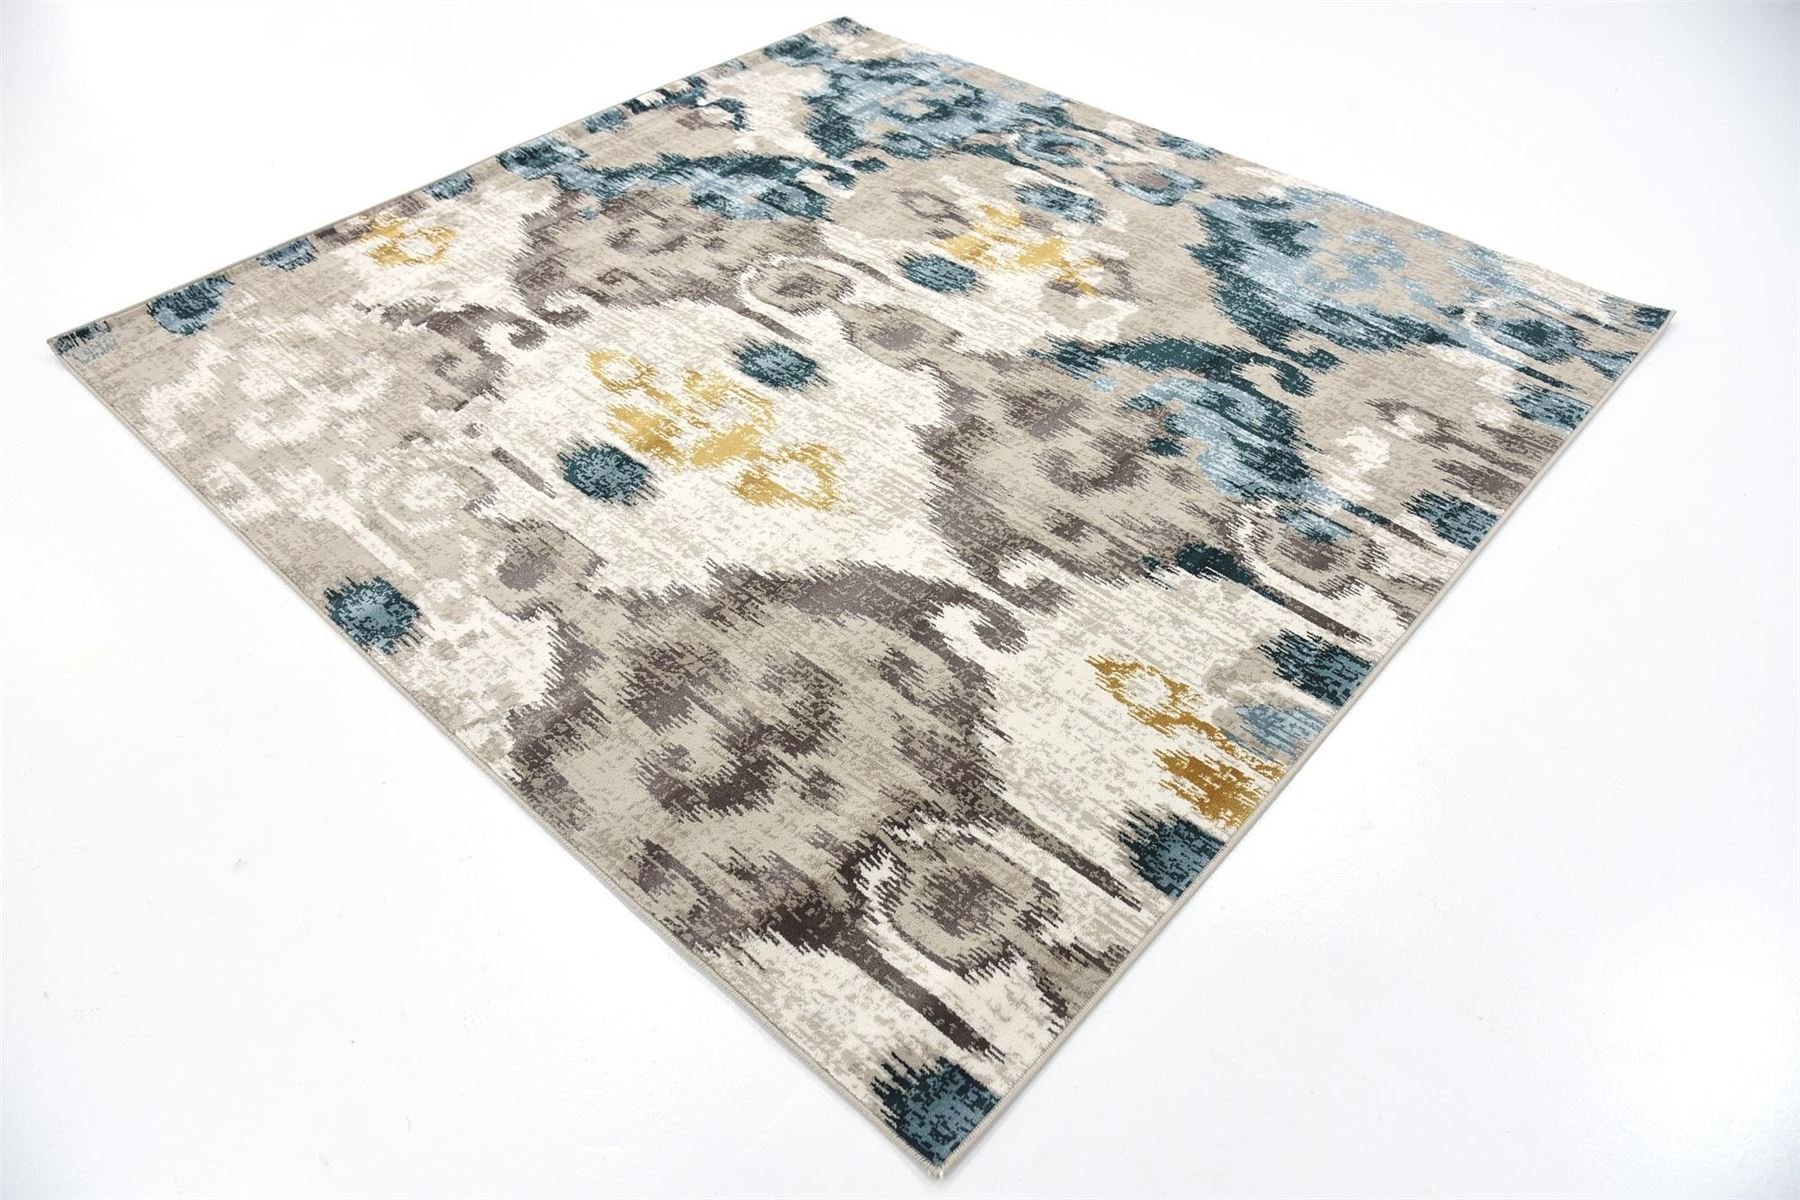 Area rug over dyed rugs vintage carpets all room sizes for Area rug sizes